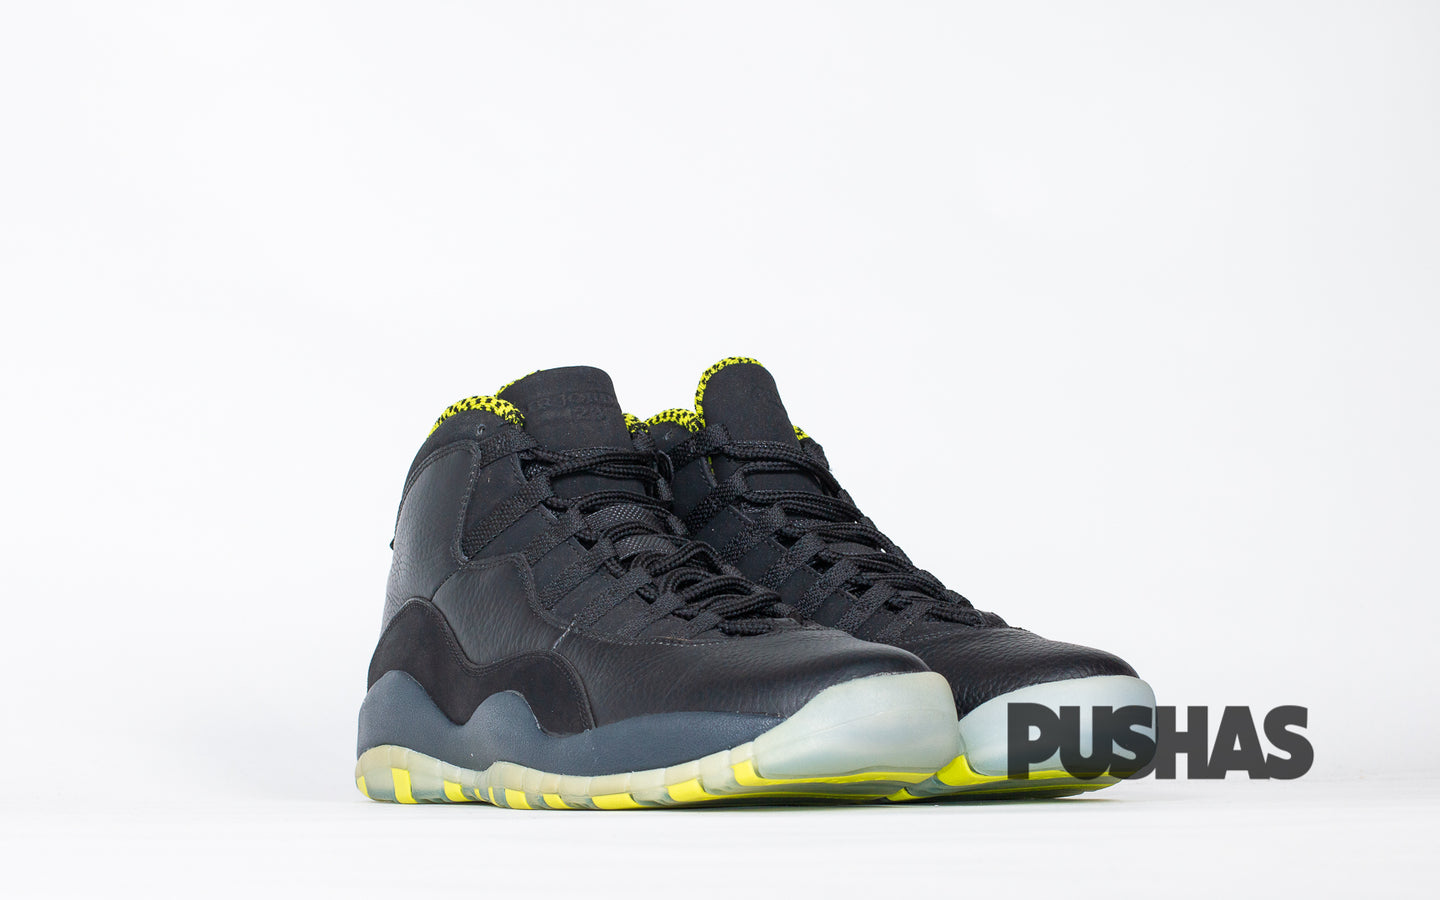 pushas-nike-Air-Jordan-10-Venom-Green